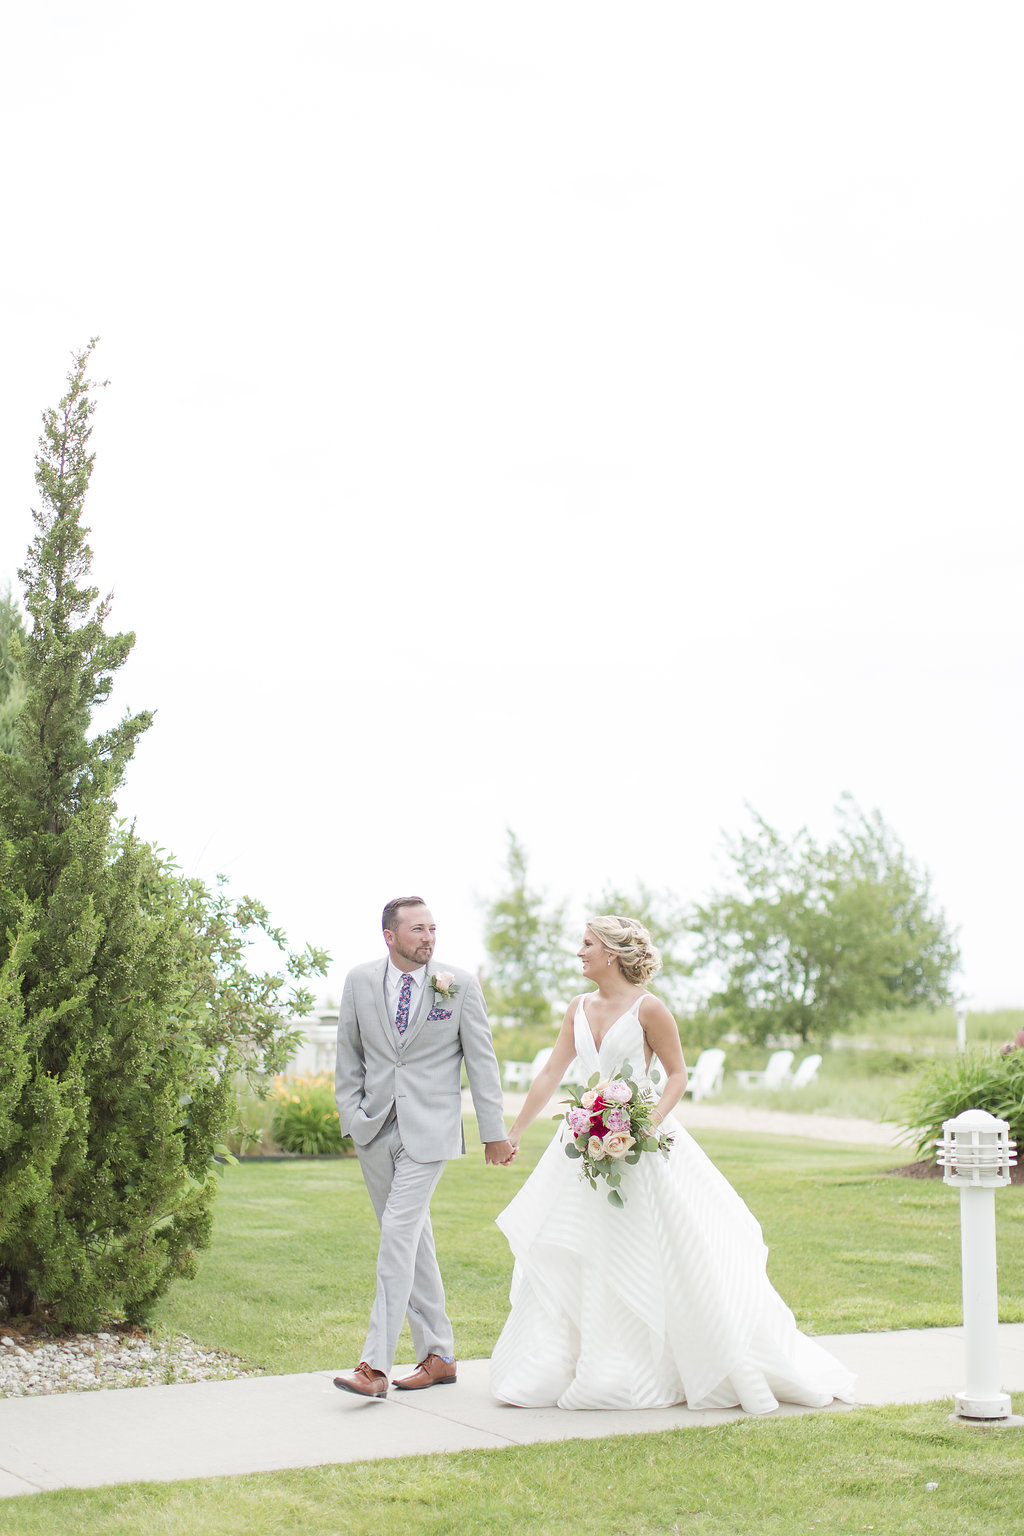 Gorgeous Wedding Photos - Sheboygan Town & Country Golf Club Wedding - Wisconsin Wedding